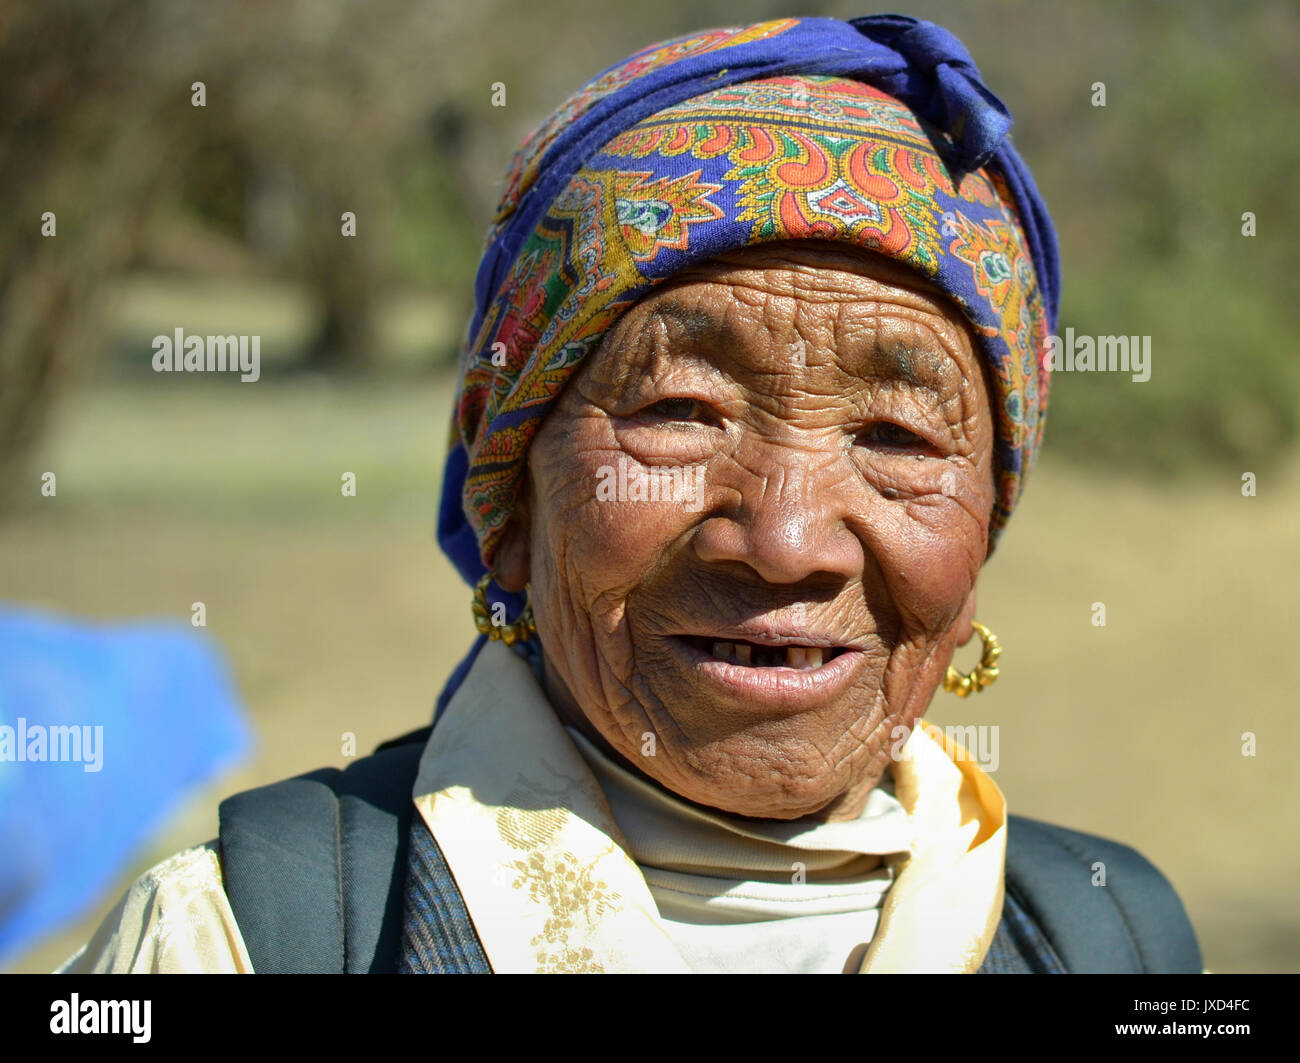 Closeup street portrait (outdoor headshot, full-face view) of an old Sherpa woman with traditional golden earrings; Stock Photo